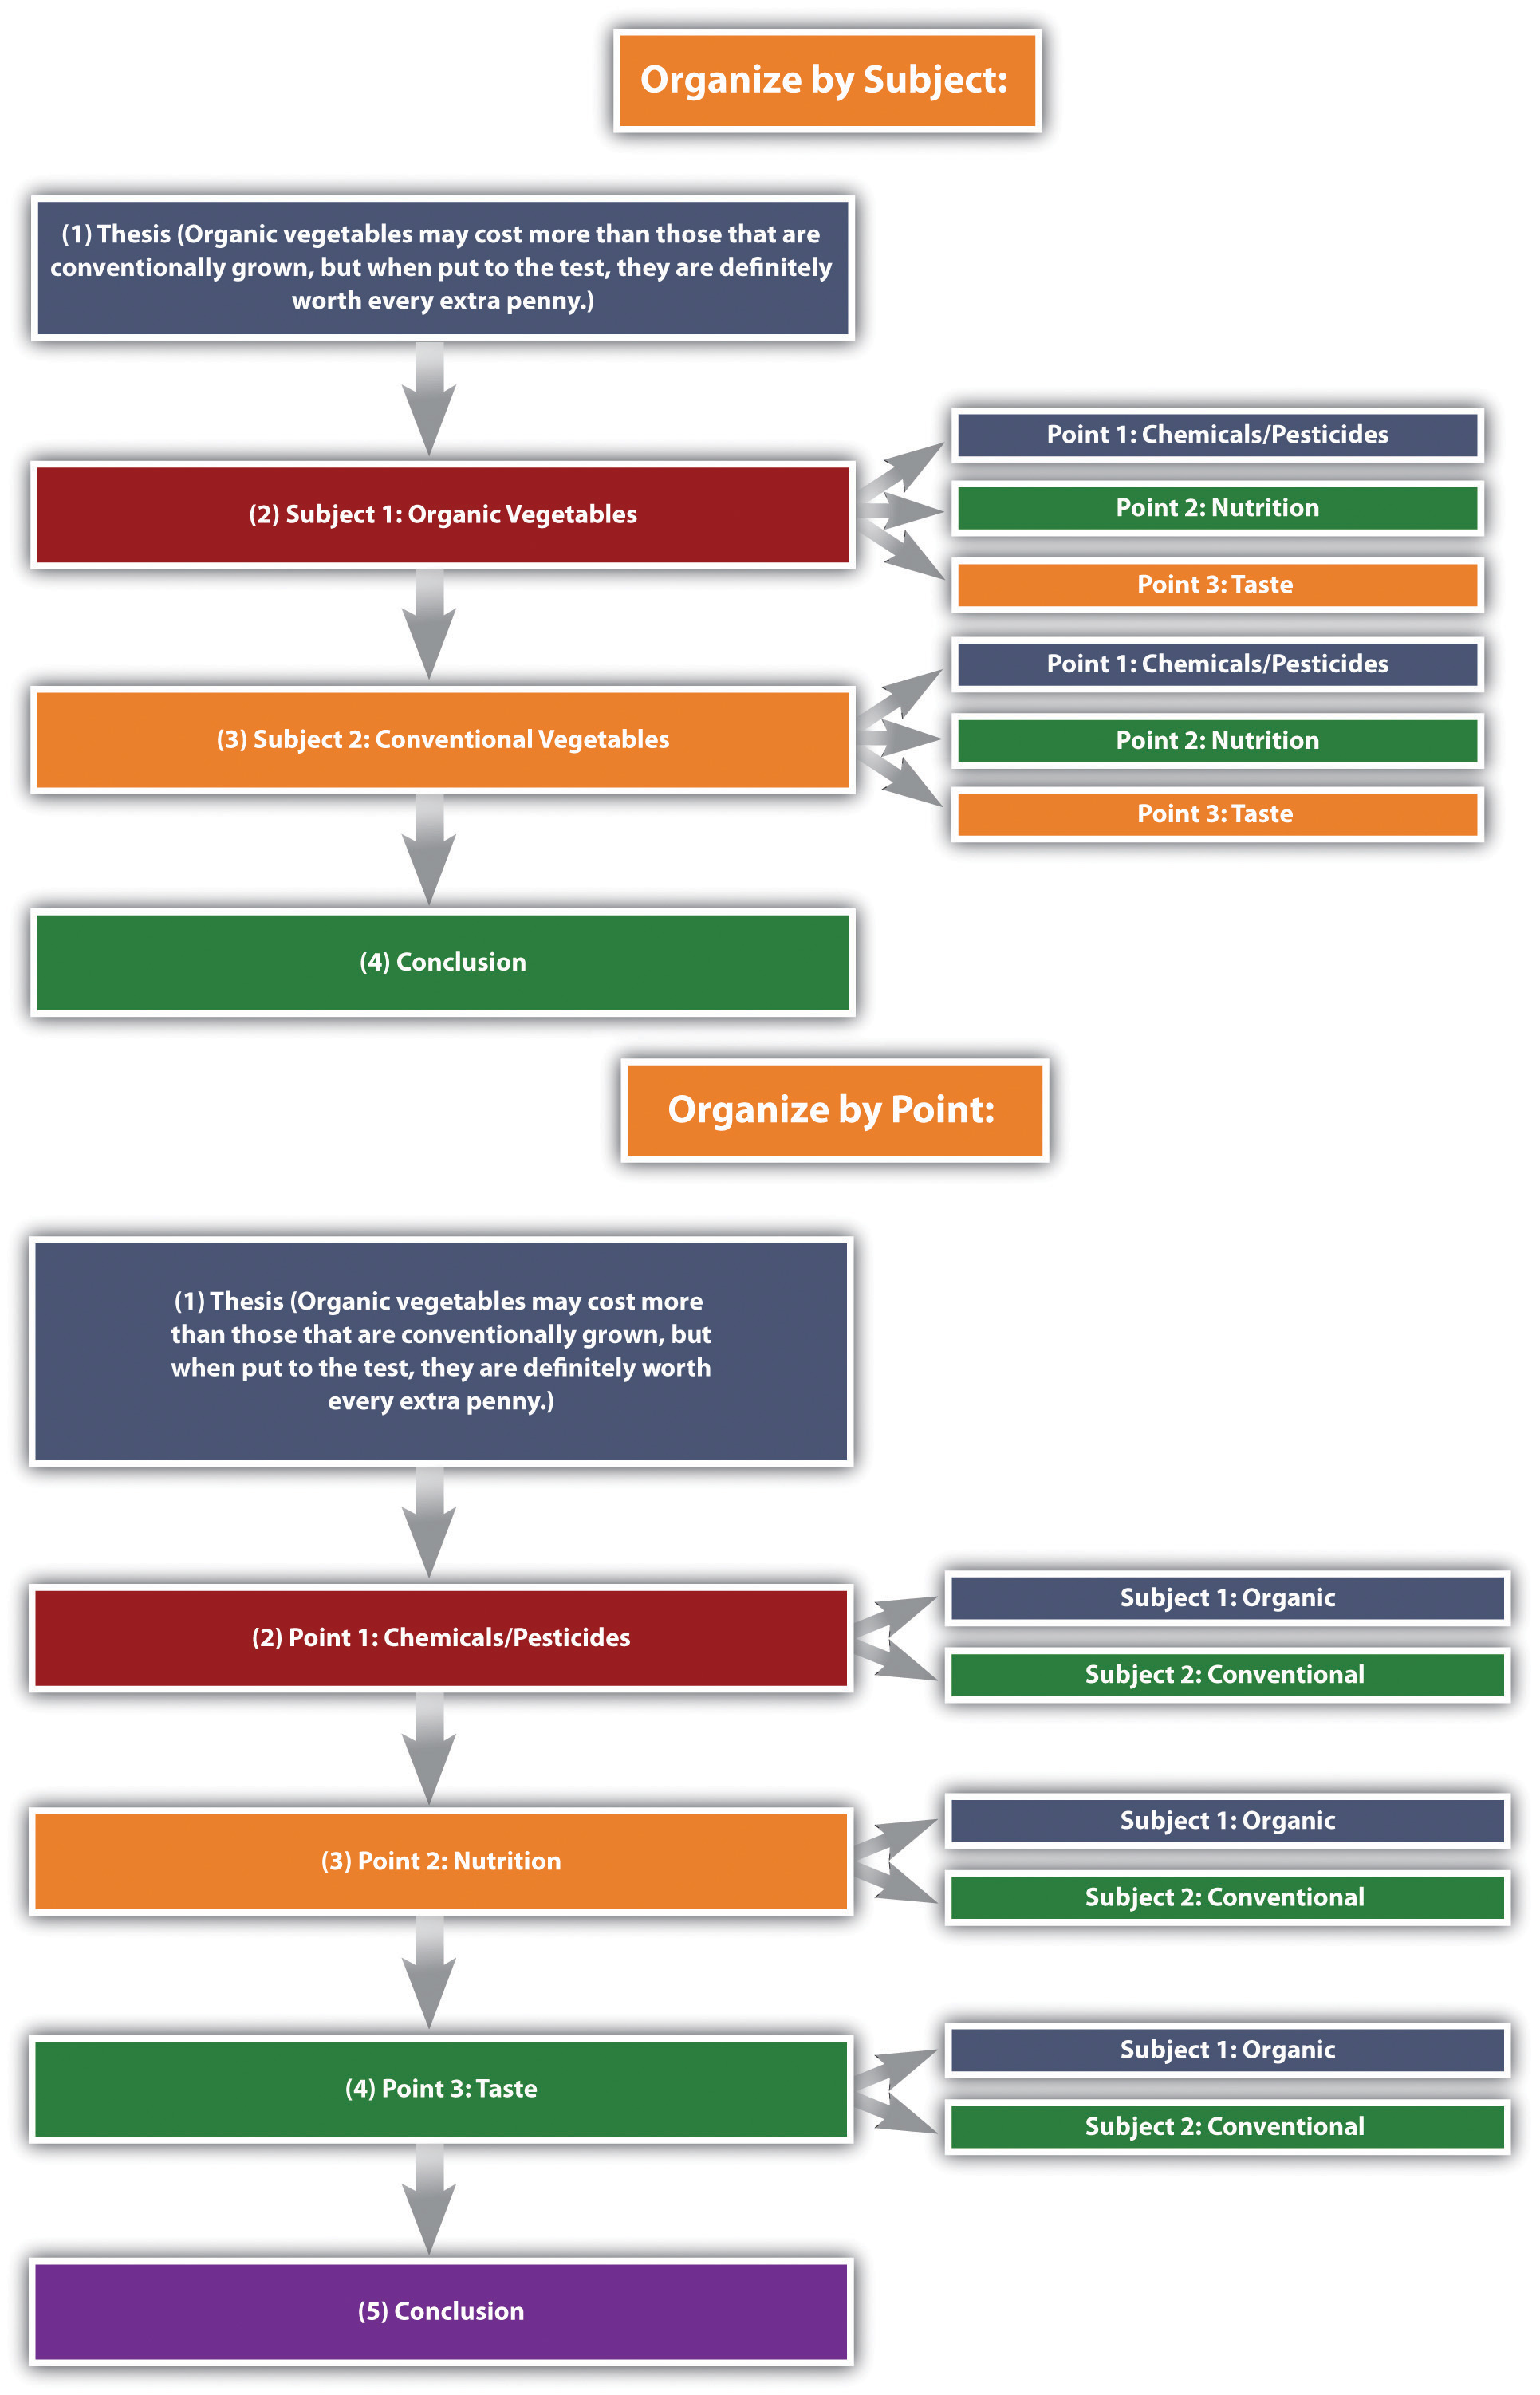 Organizational structure by subject and by point